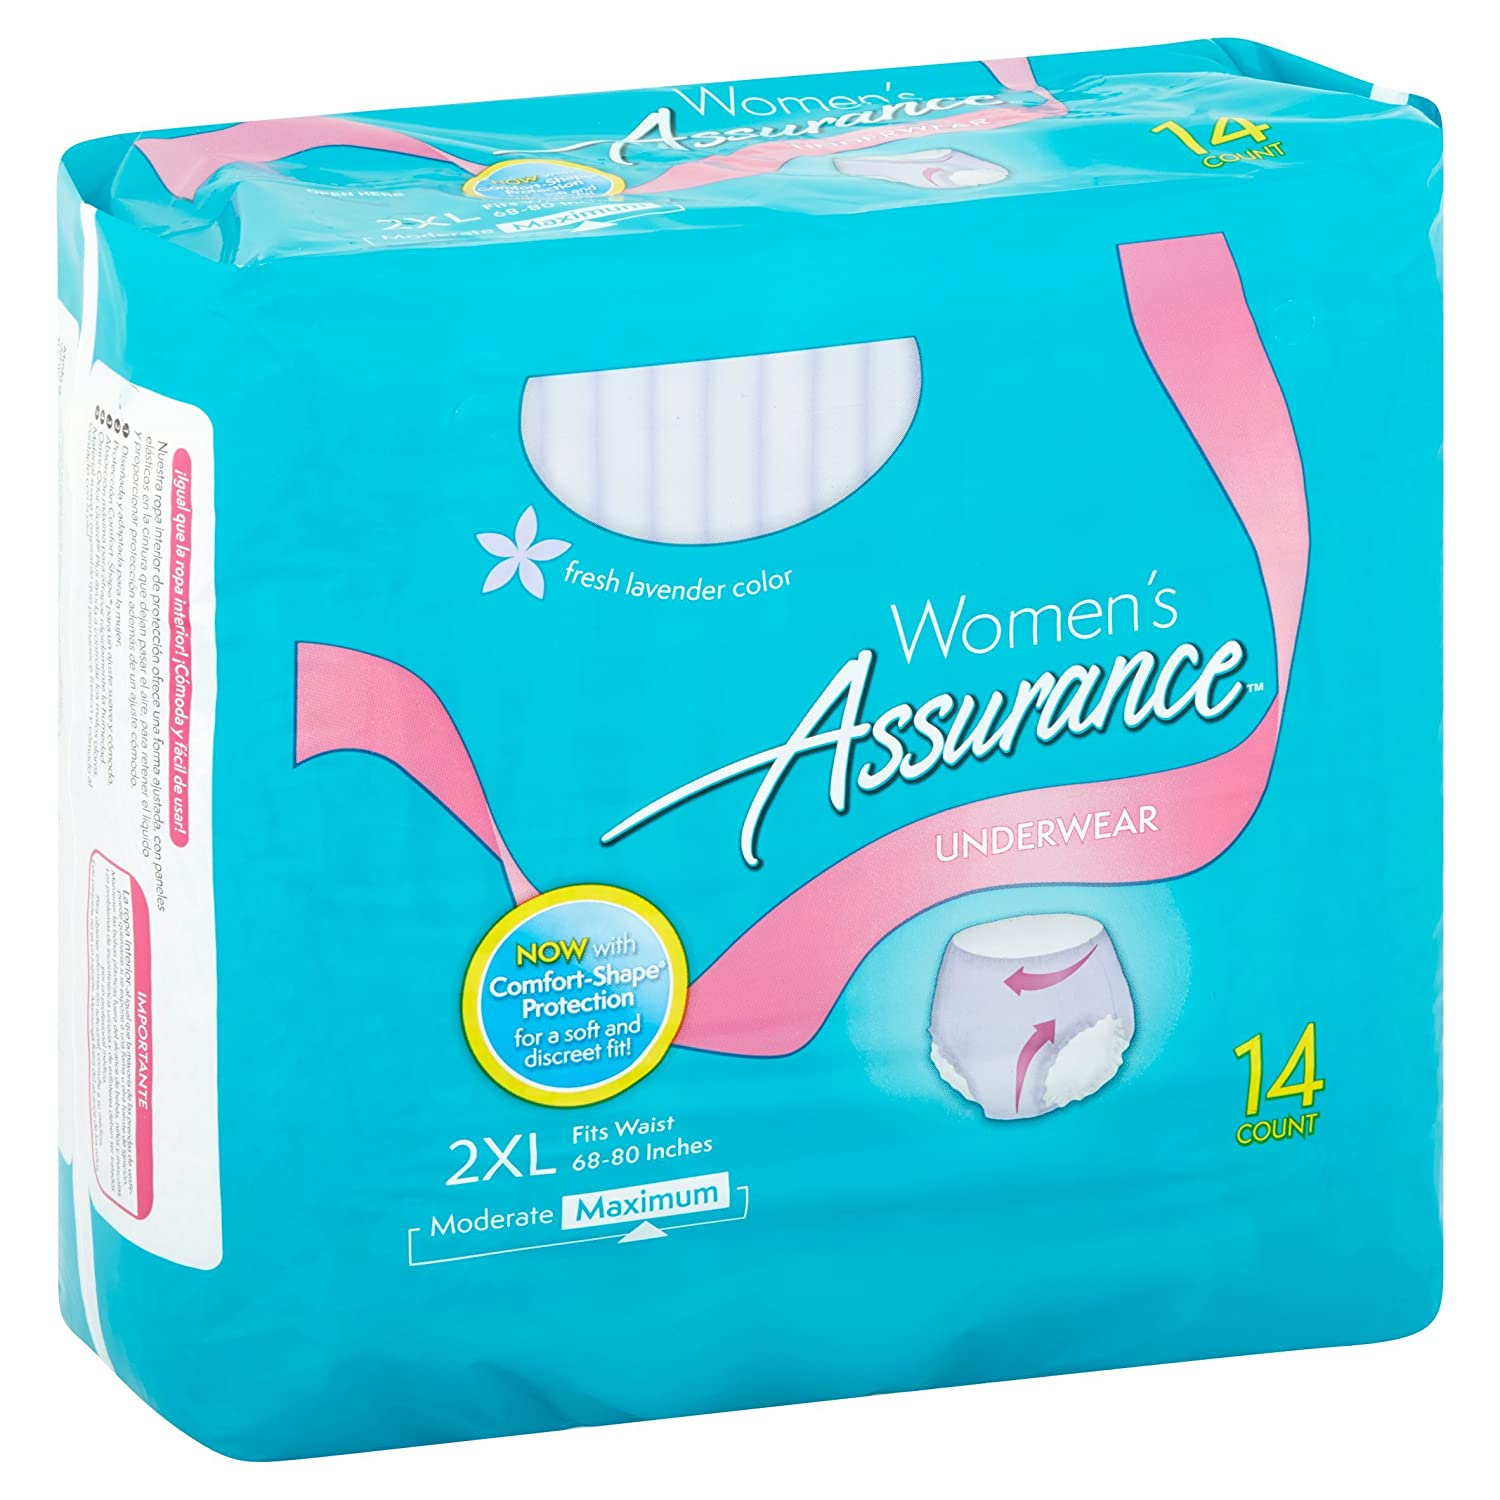 Amazon.com: PACK OF 5 - Womens Assurance Maximum Fresh Lavender Color Underwear 2XL 14 Counts: Health & Personal Care